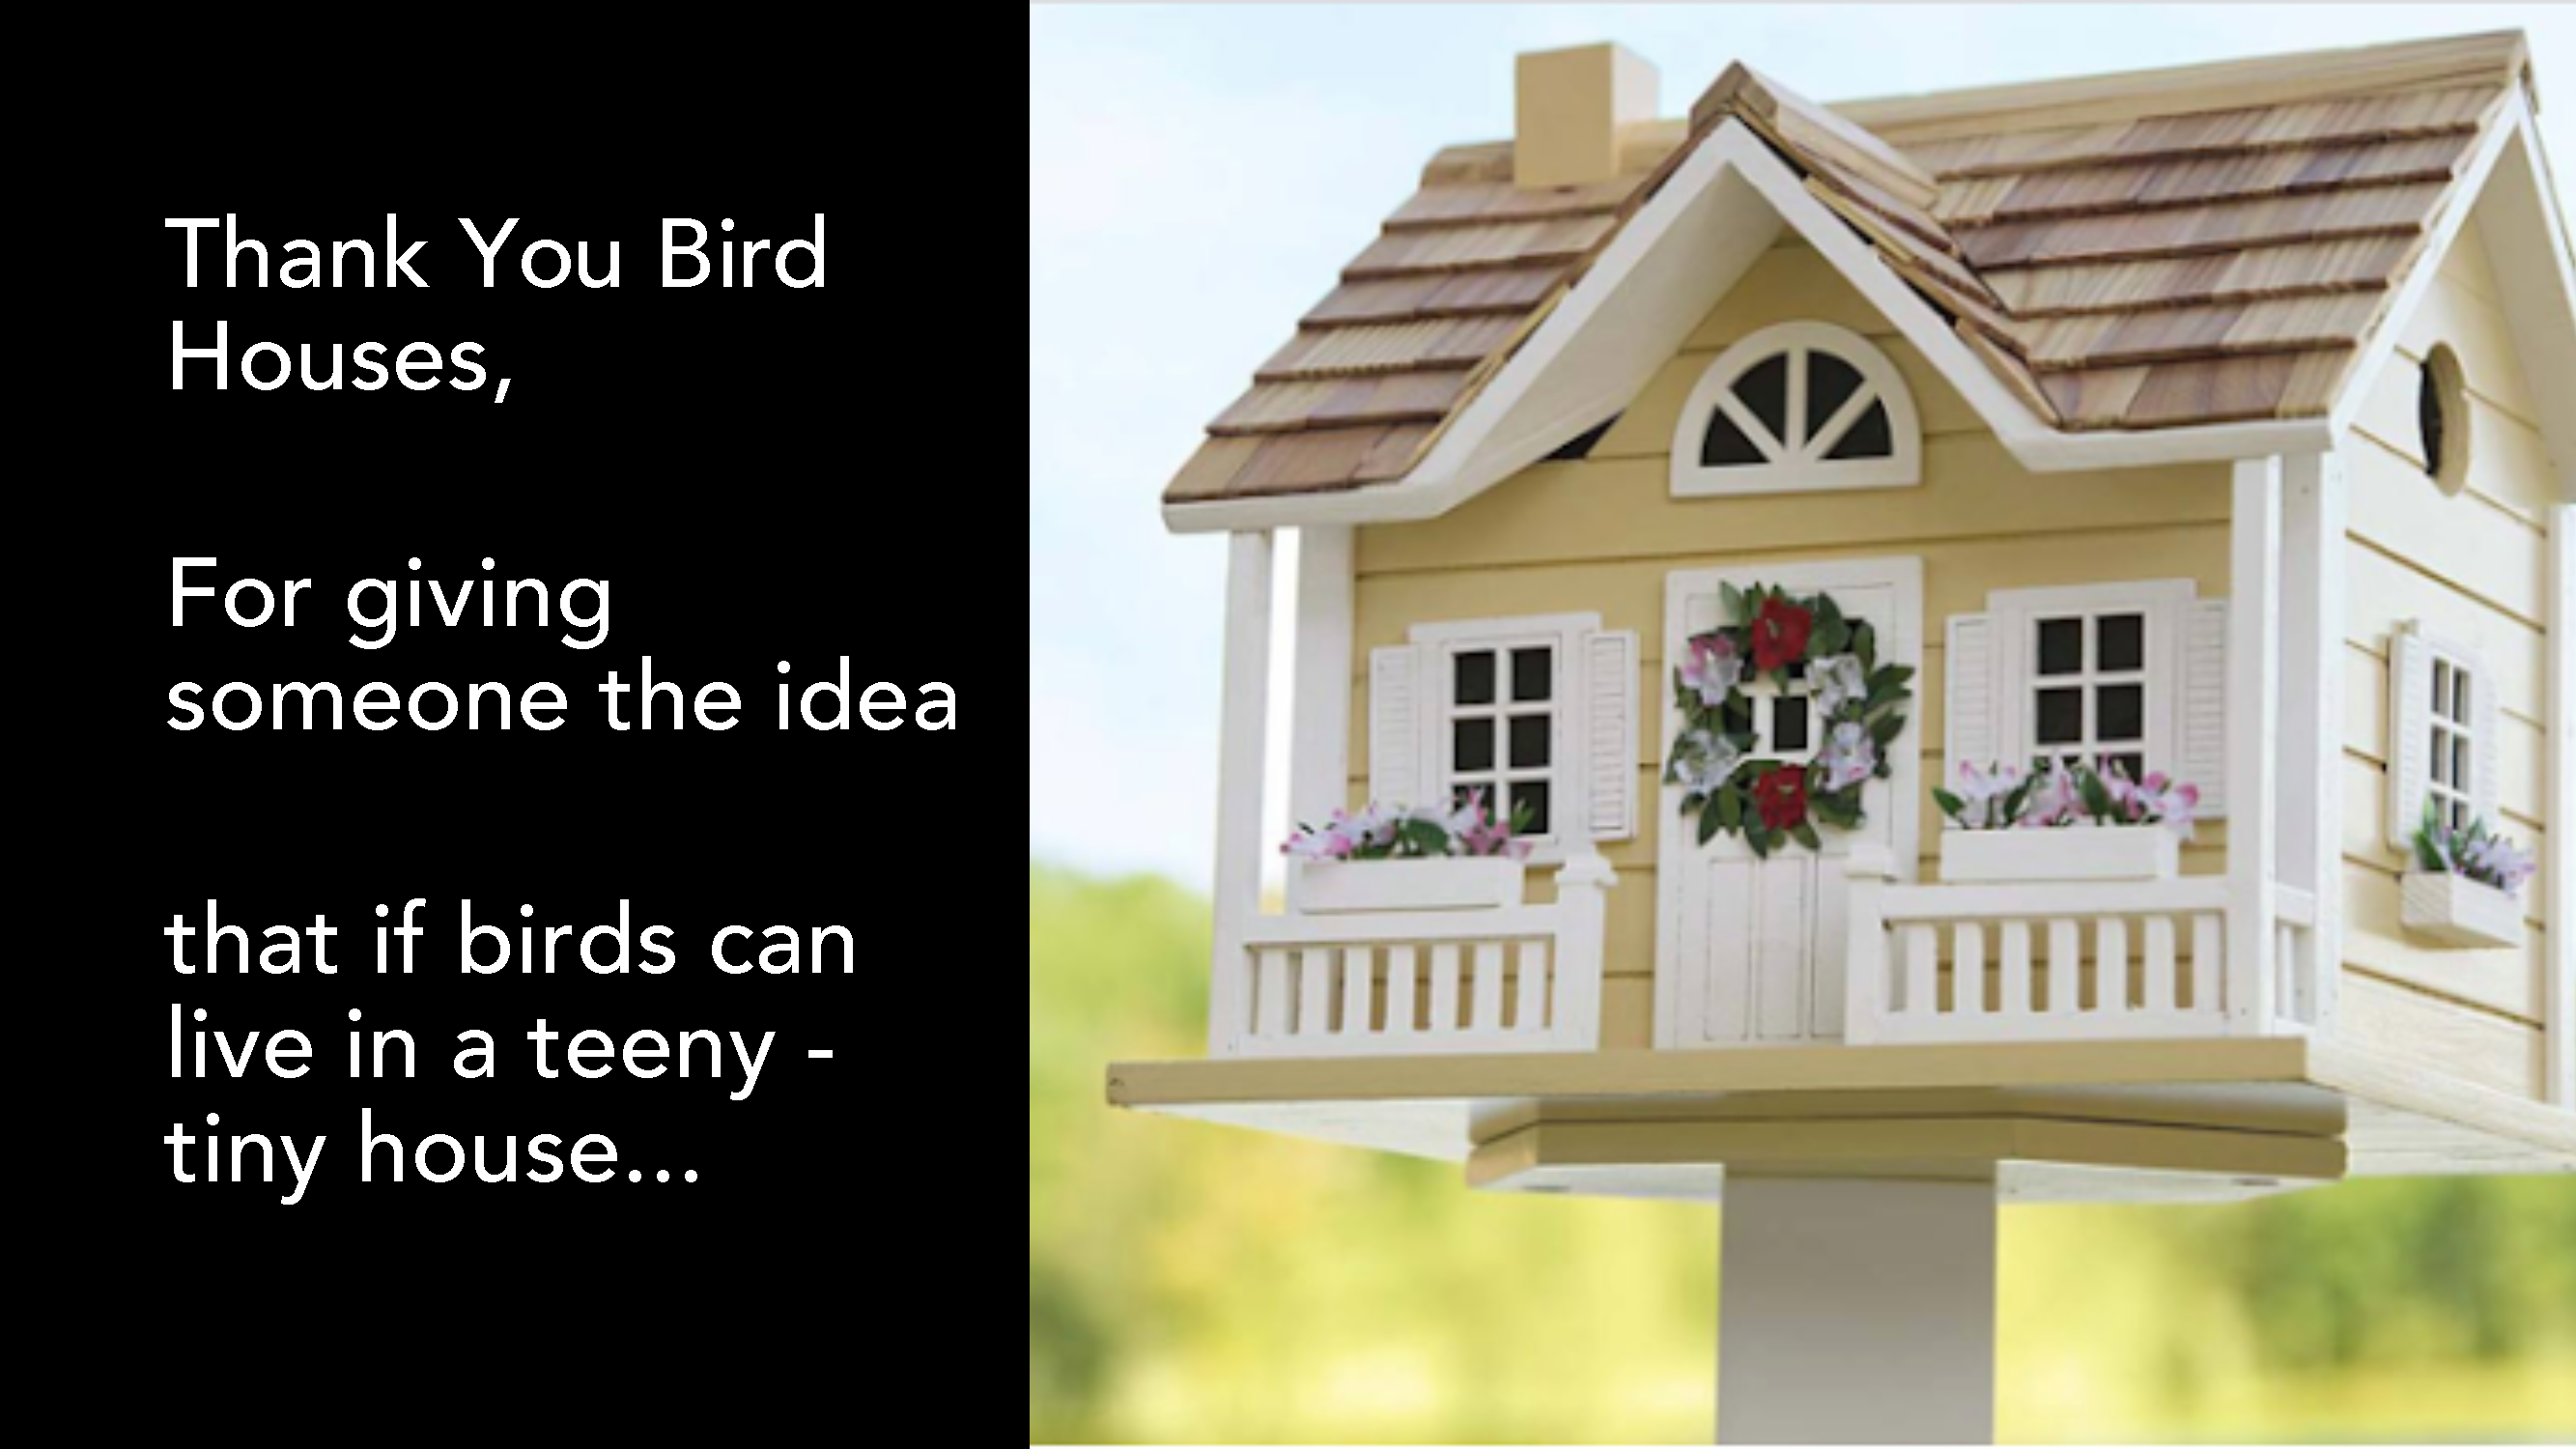 Birdhouse_Revised